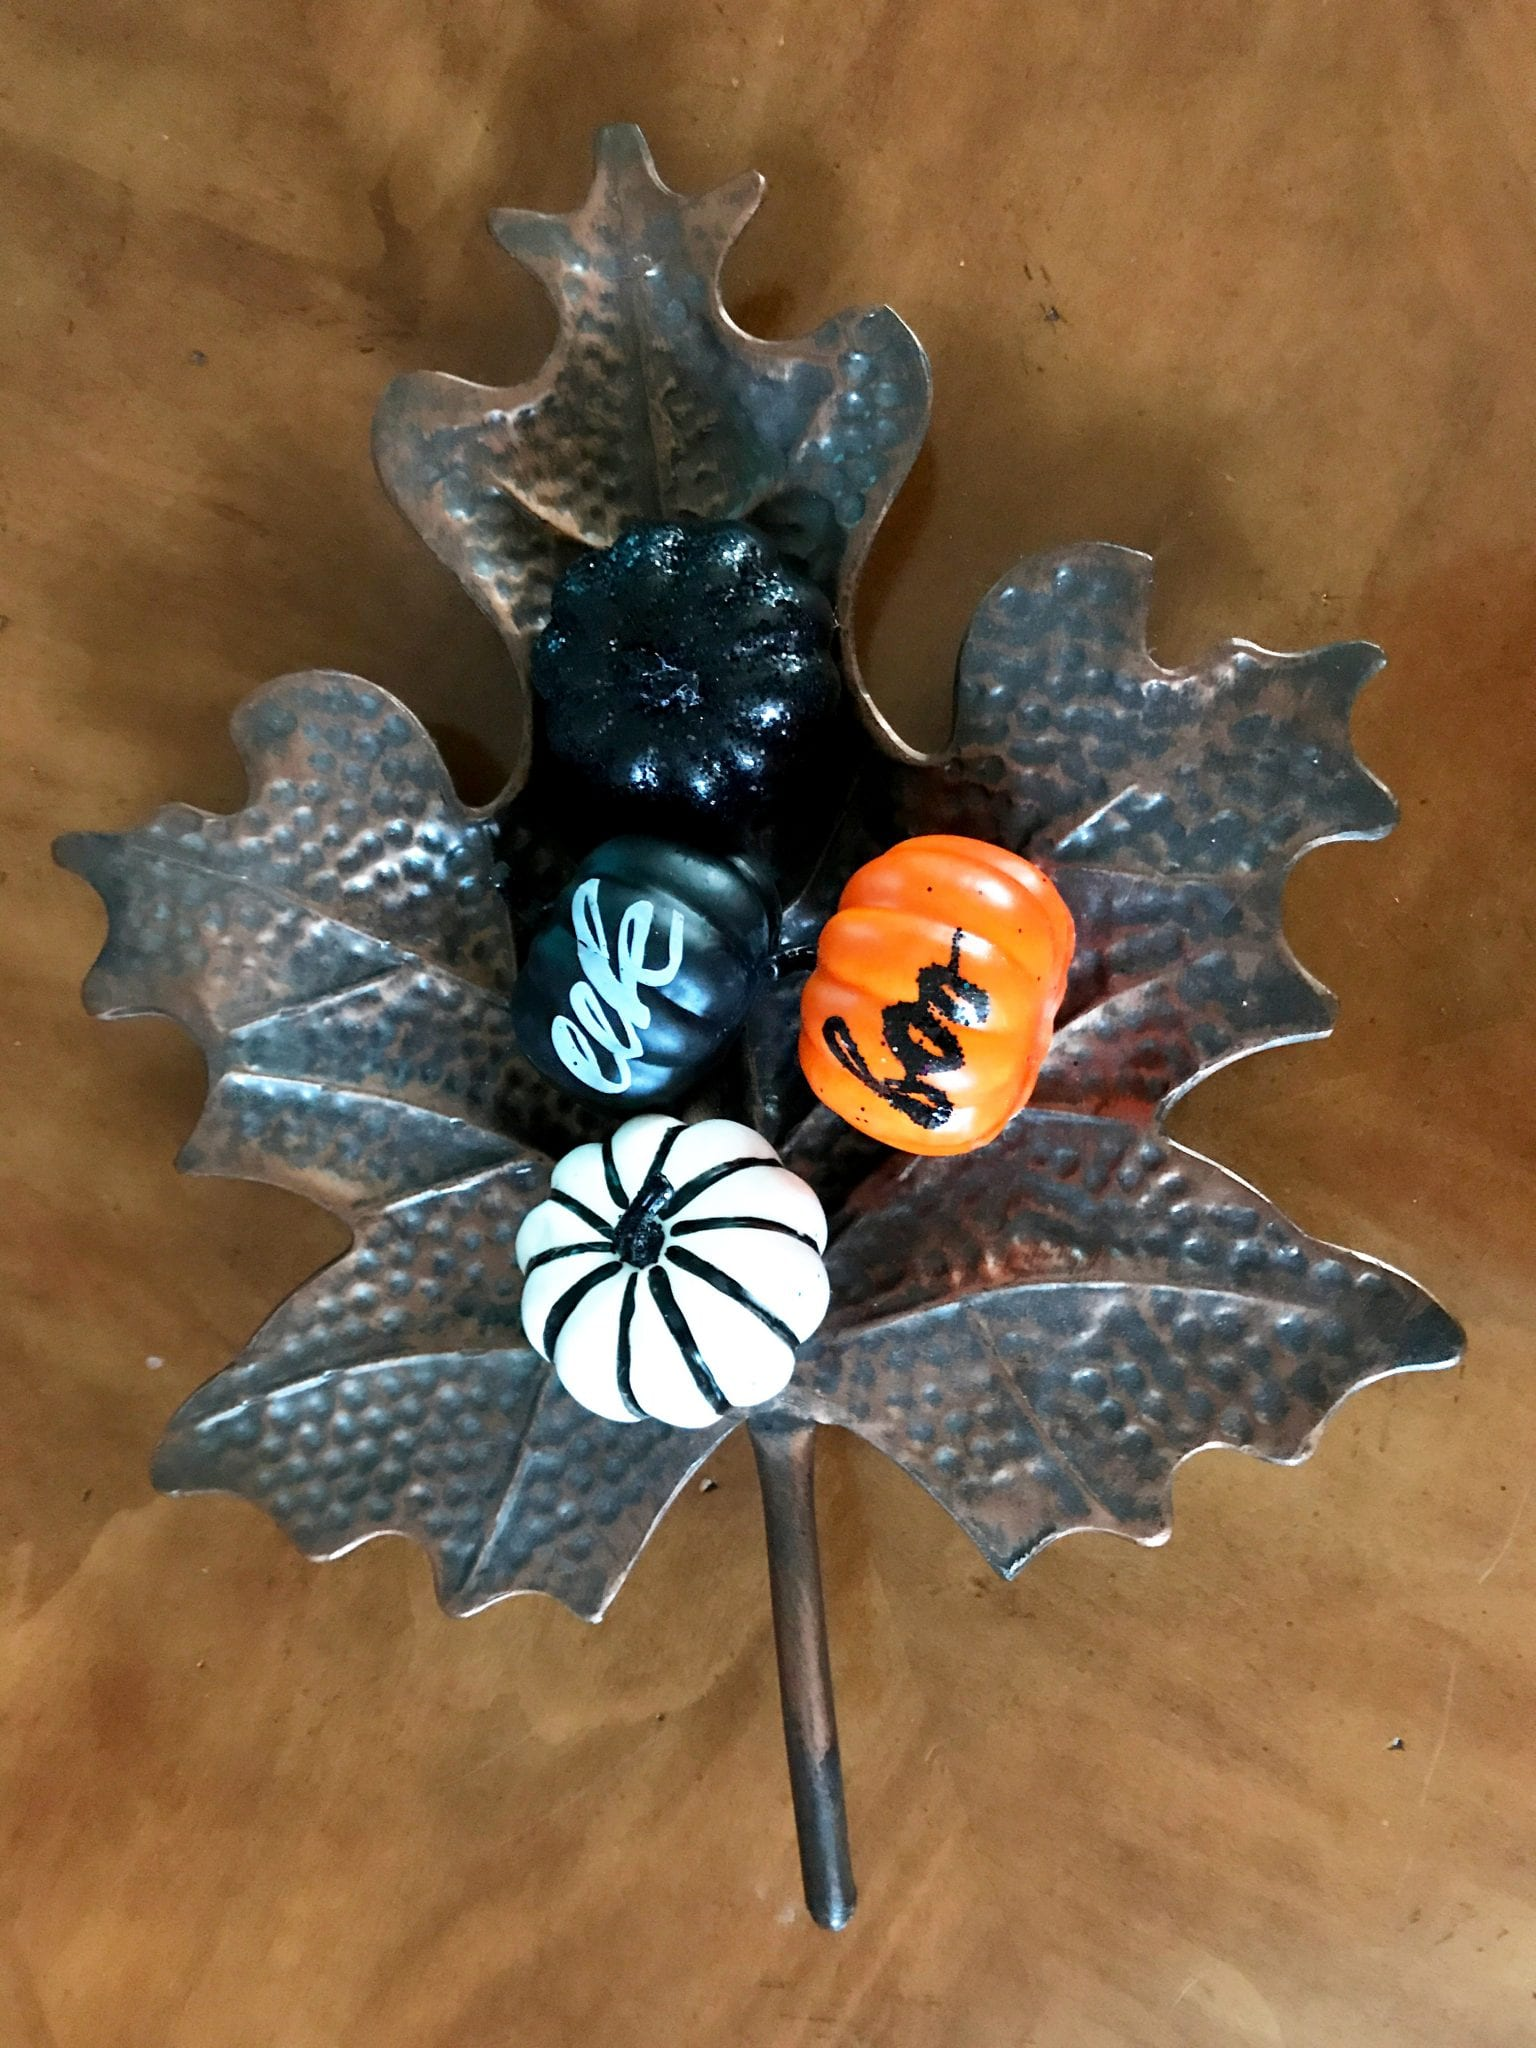 Halloween decorations under $10 from Target's One Spot